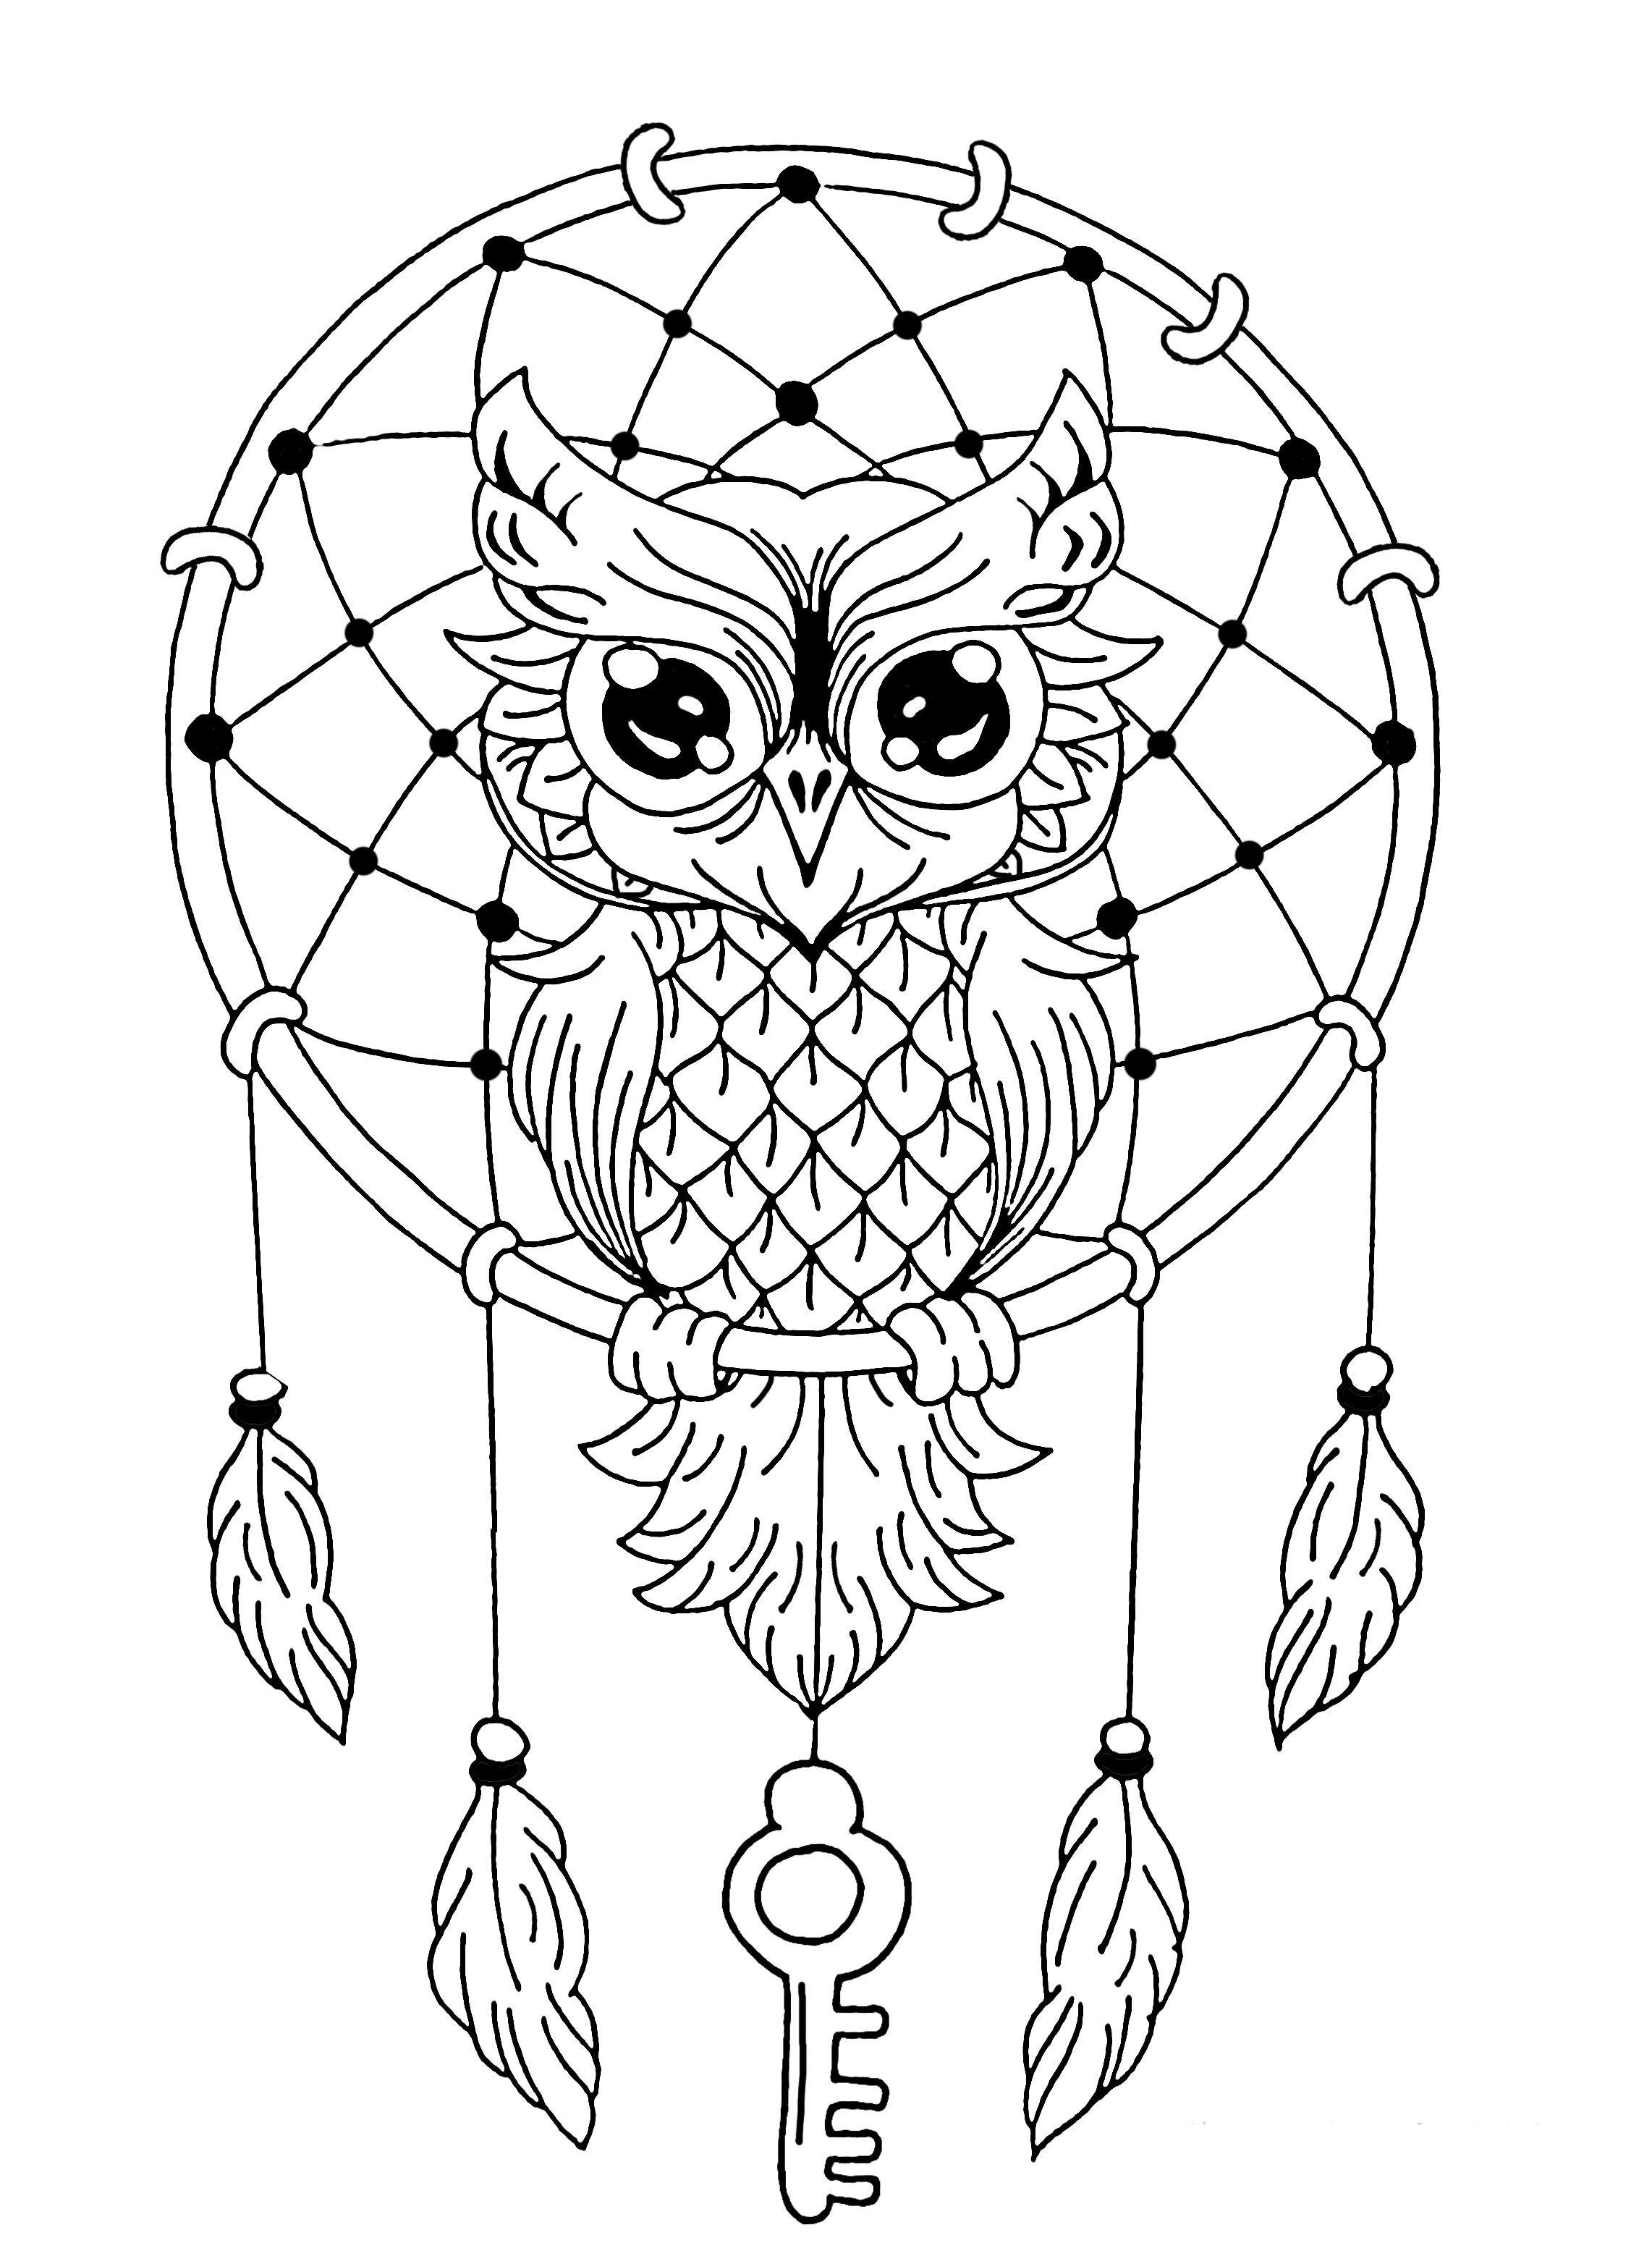 Owl Coloring Pages For Adults Owl Mandala Coloring Pages Gallery Free Books Color 27241 Davemelillo Com In 2020 Owl Coloring Pages Cute Coloring Pages Dream Catcher Coloring Pages